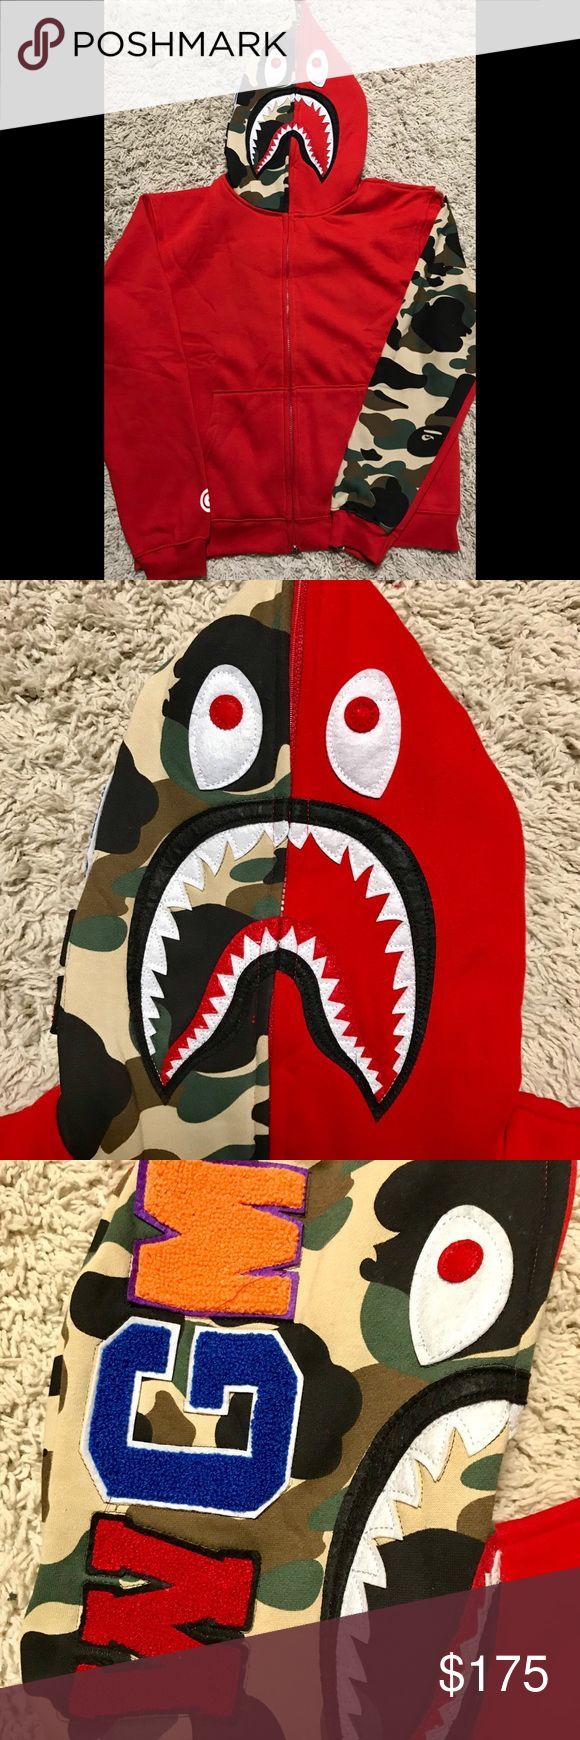 Accepting offers Bape ( A Bathing Ape) Camo Hoodie Altogether 9 sold till now !! I've sold 4 in total with 5 star rating in each transaction as you can see on my profile. Three sold in 2 minutes.  This is for all my brothers who can't spend 600$ for a damn hoodie. This is for the all the brothers to flex like a real G they deserve to be. Price is almost firm. Send me REASONABLE OFFERS tho. NO TRADE! Bape Jackets & Coats Lightweight & Shirt Jackets